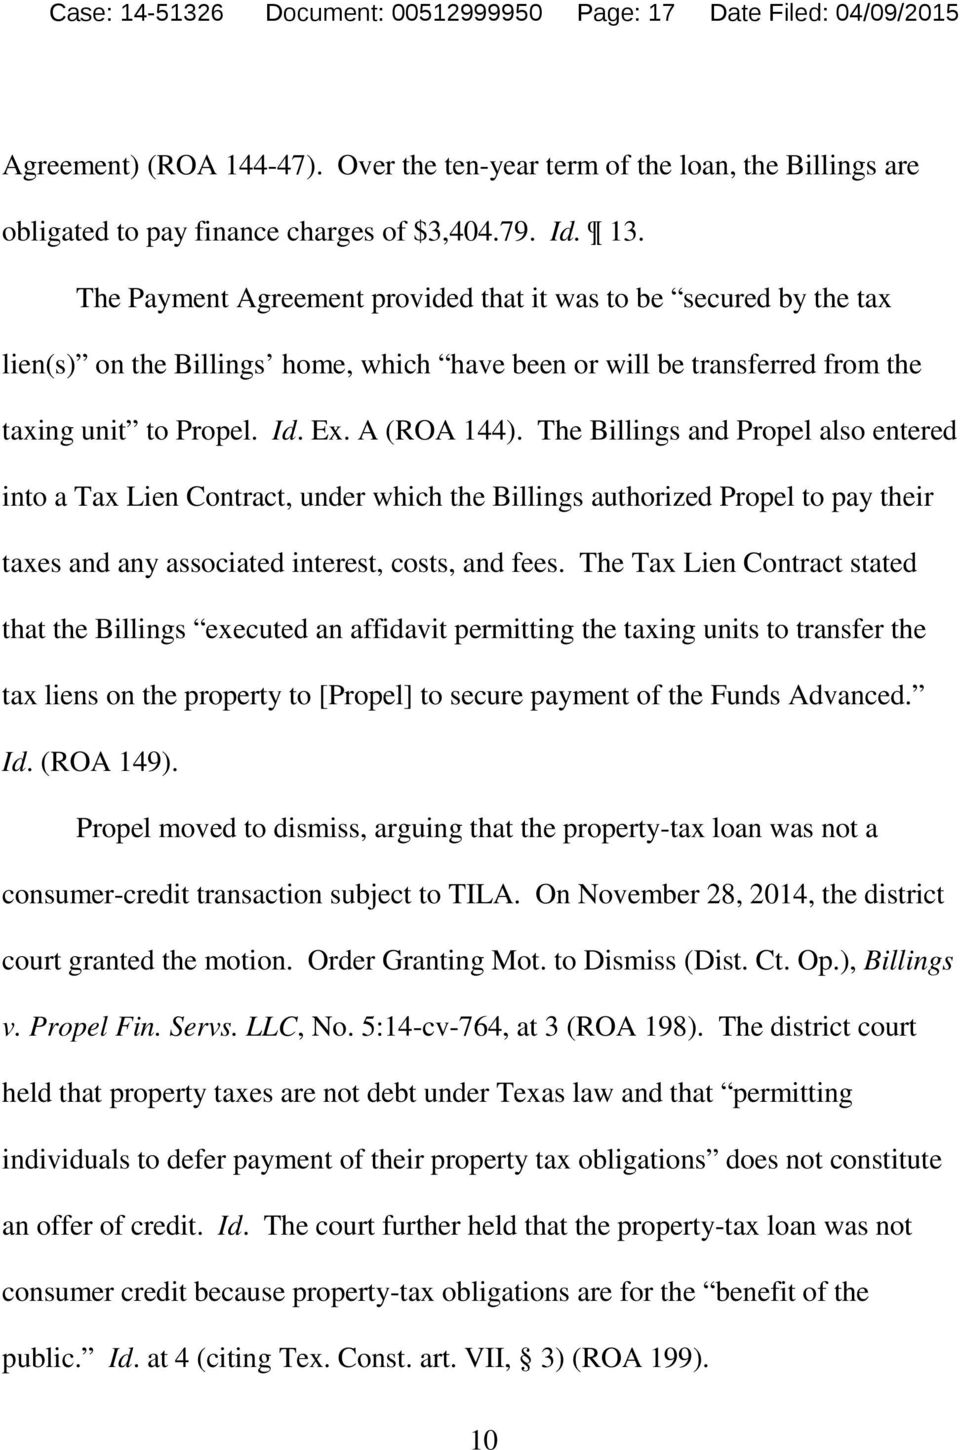 The Billings and Propel also entered into a Tax Lien Contract, under which the Billings authorized Propel to pay their taxes and any associated interest, costs, and fees.